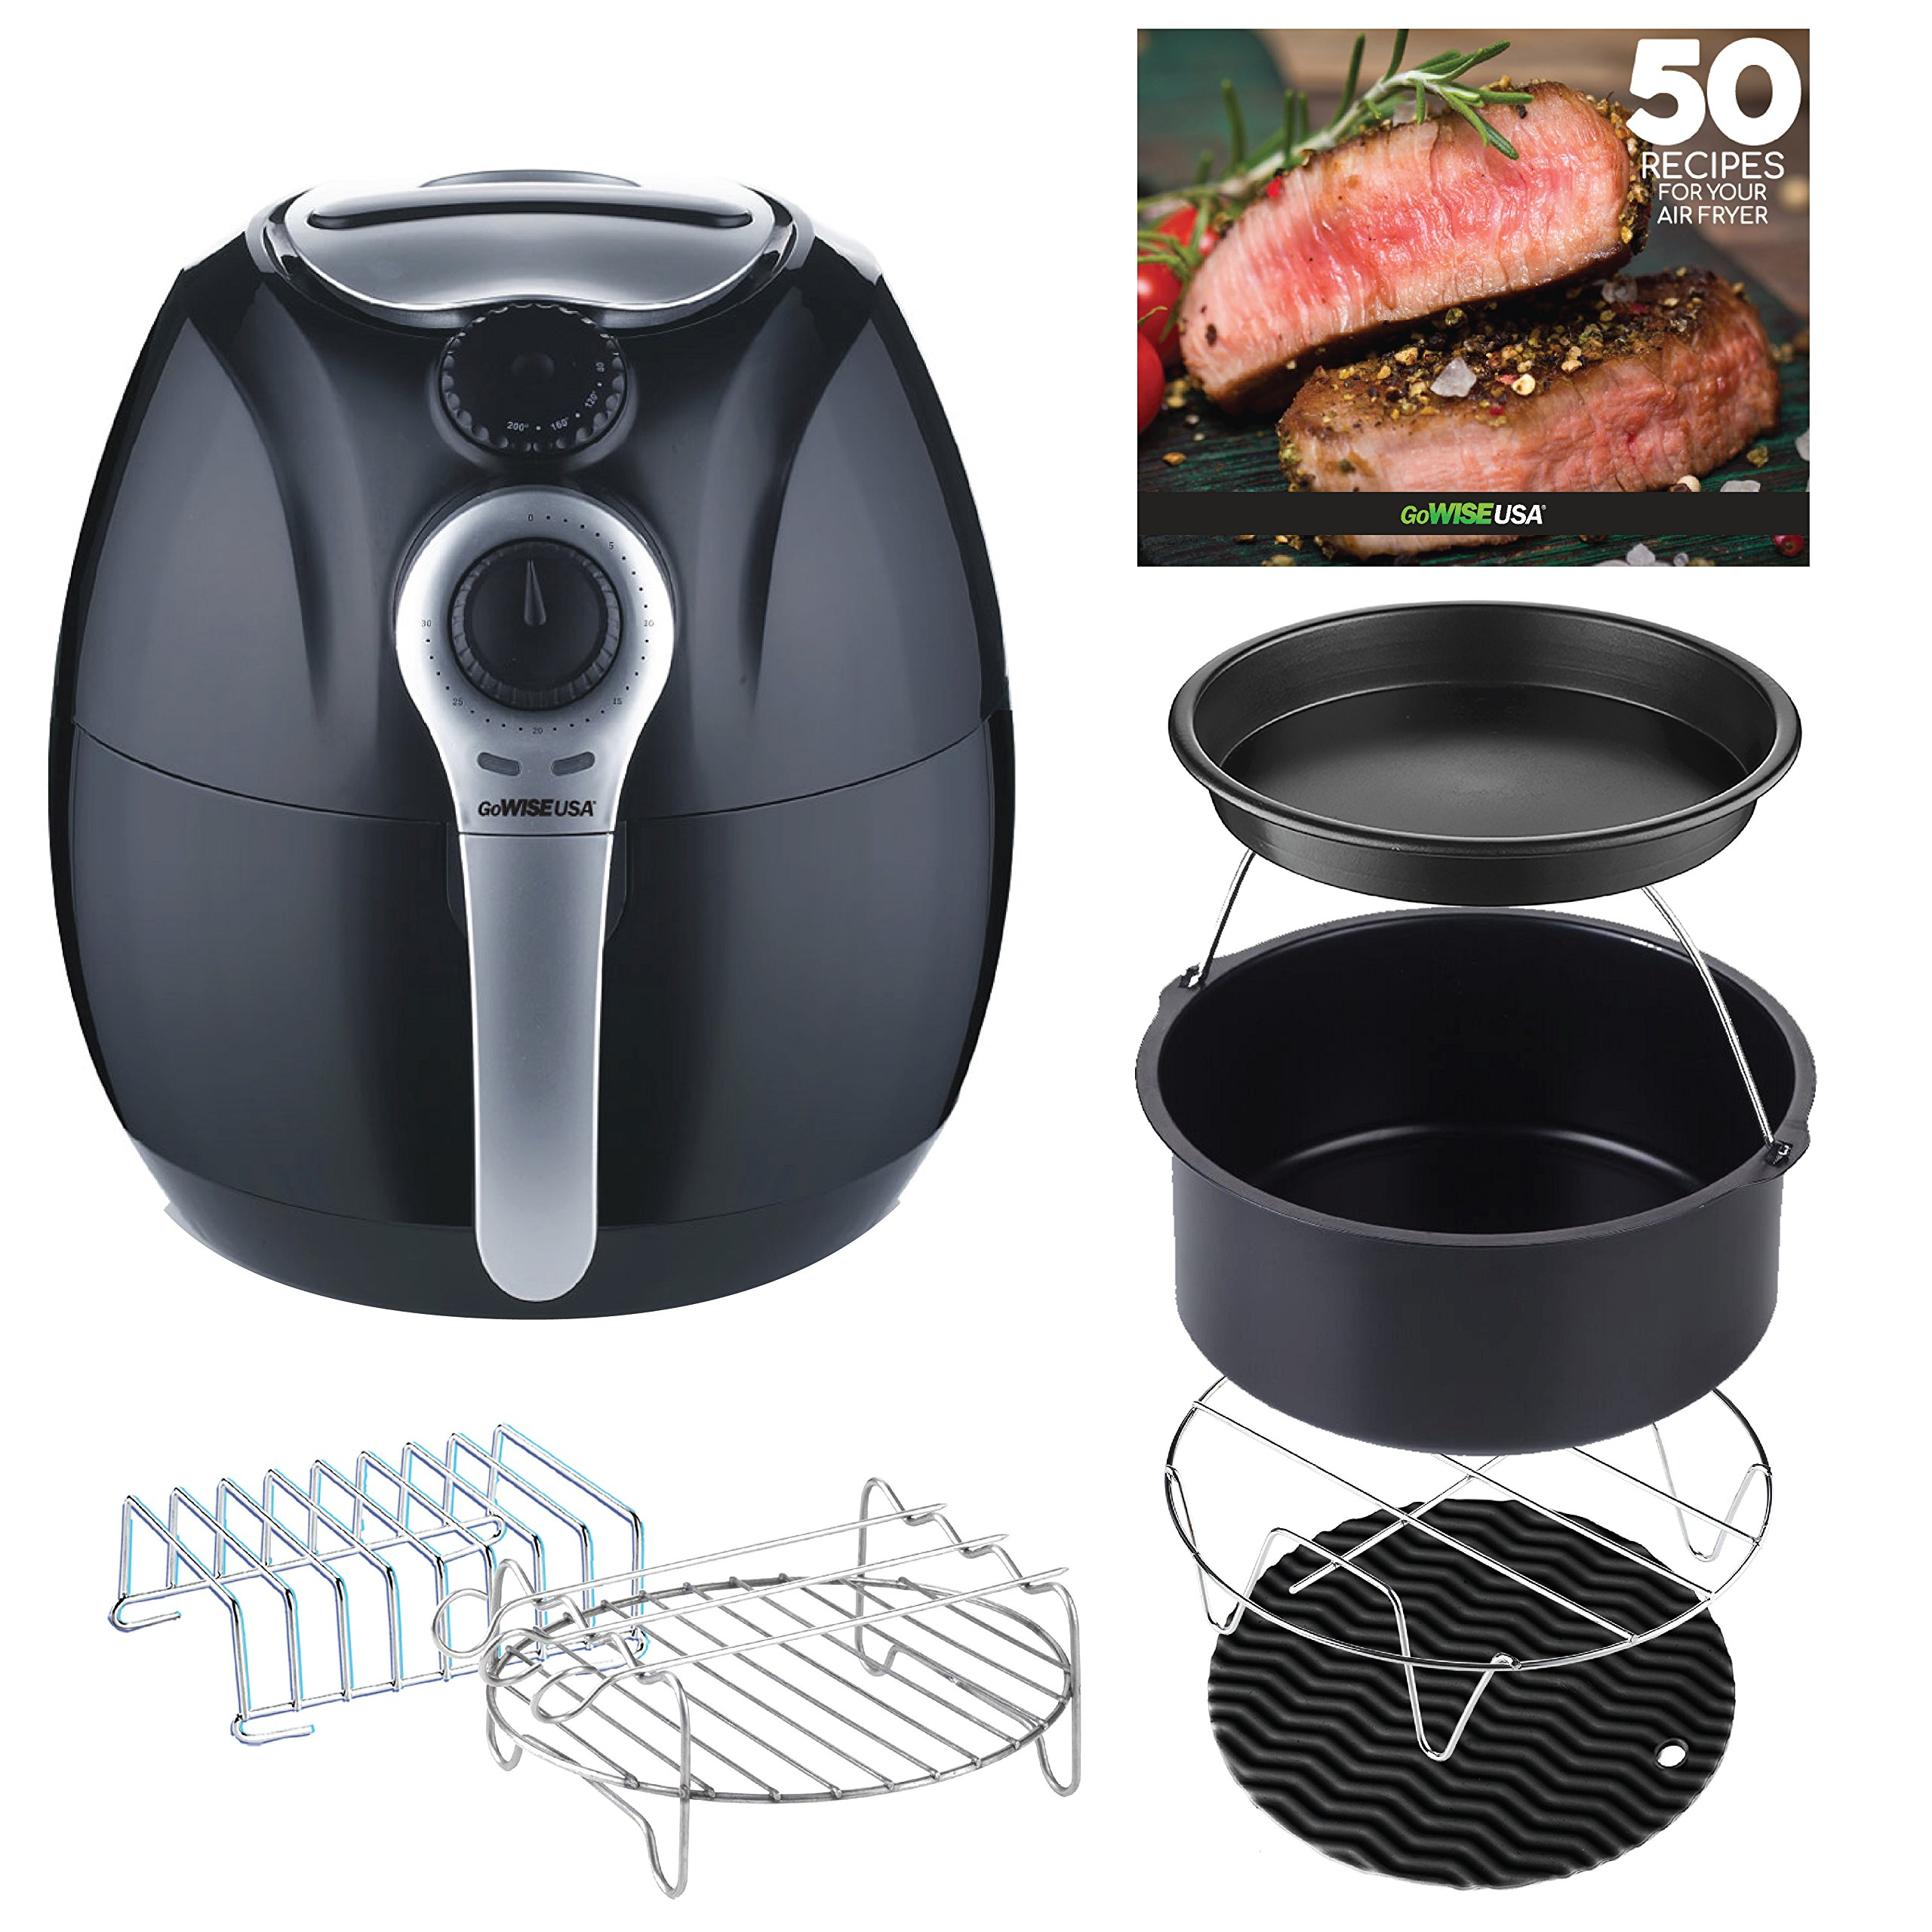 GoWISE USA 3.7-Quart 7-in-1 Air Fryer + 50 Recipes for your Air Fryer (Black+Accessories (Dial))